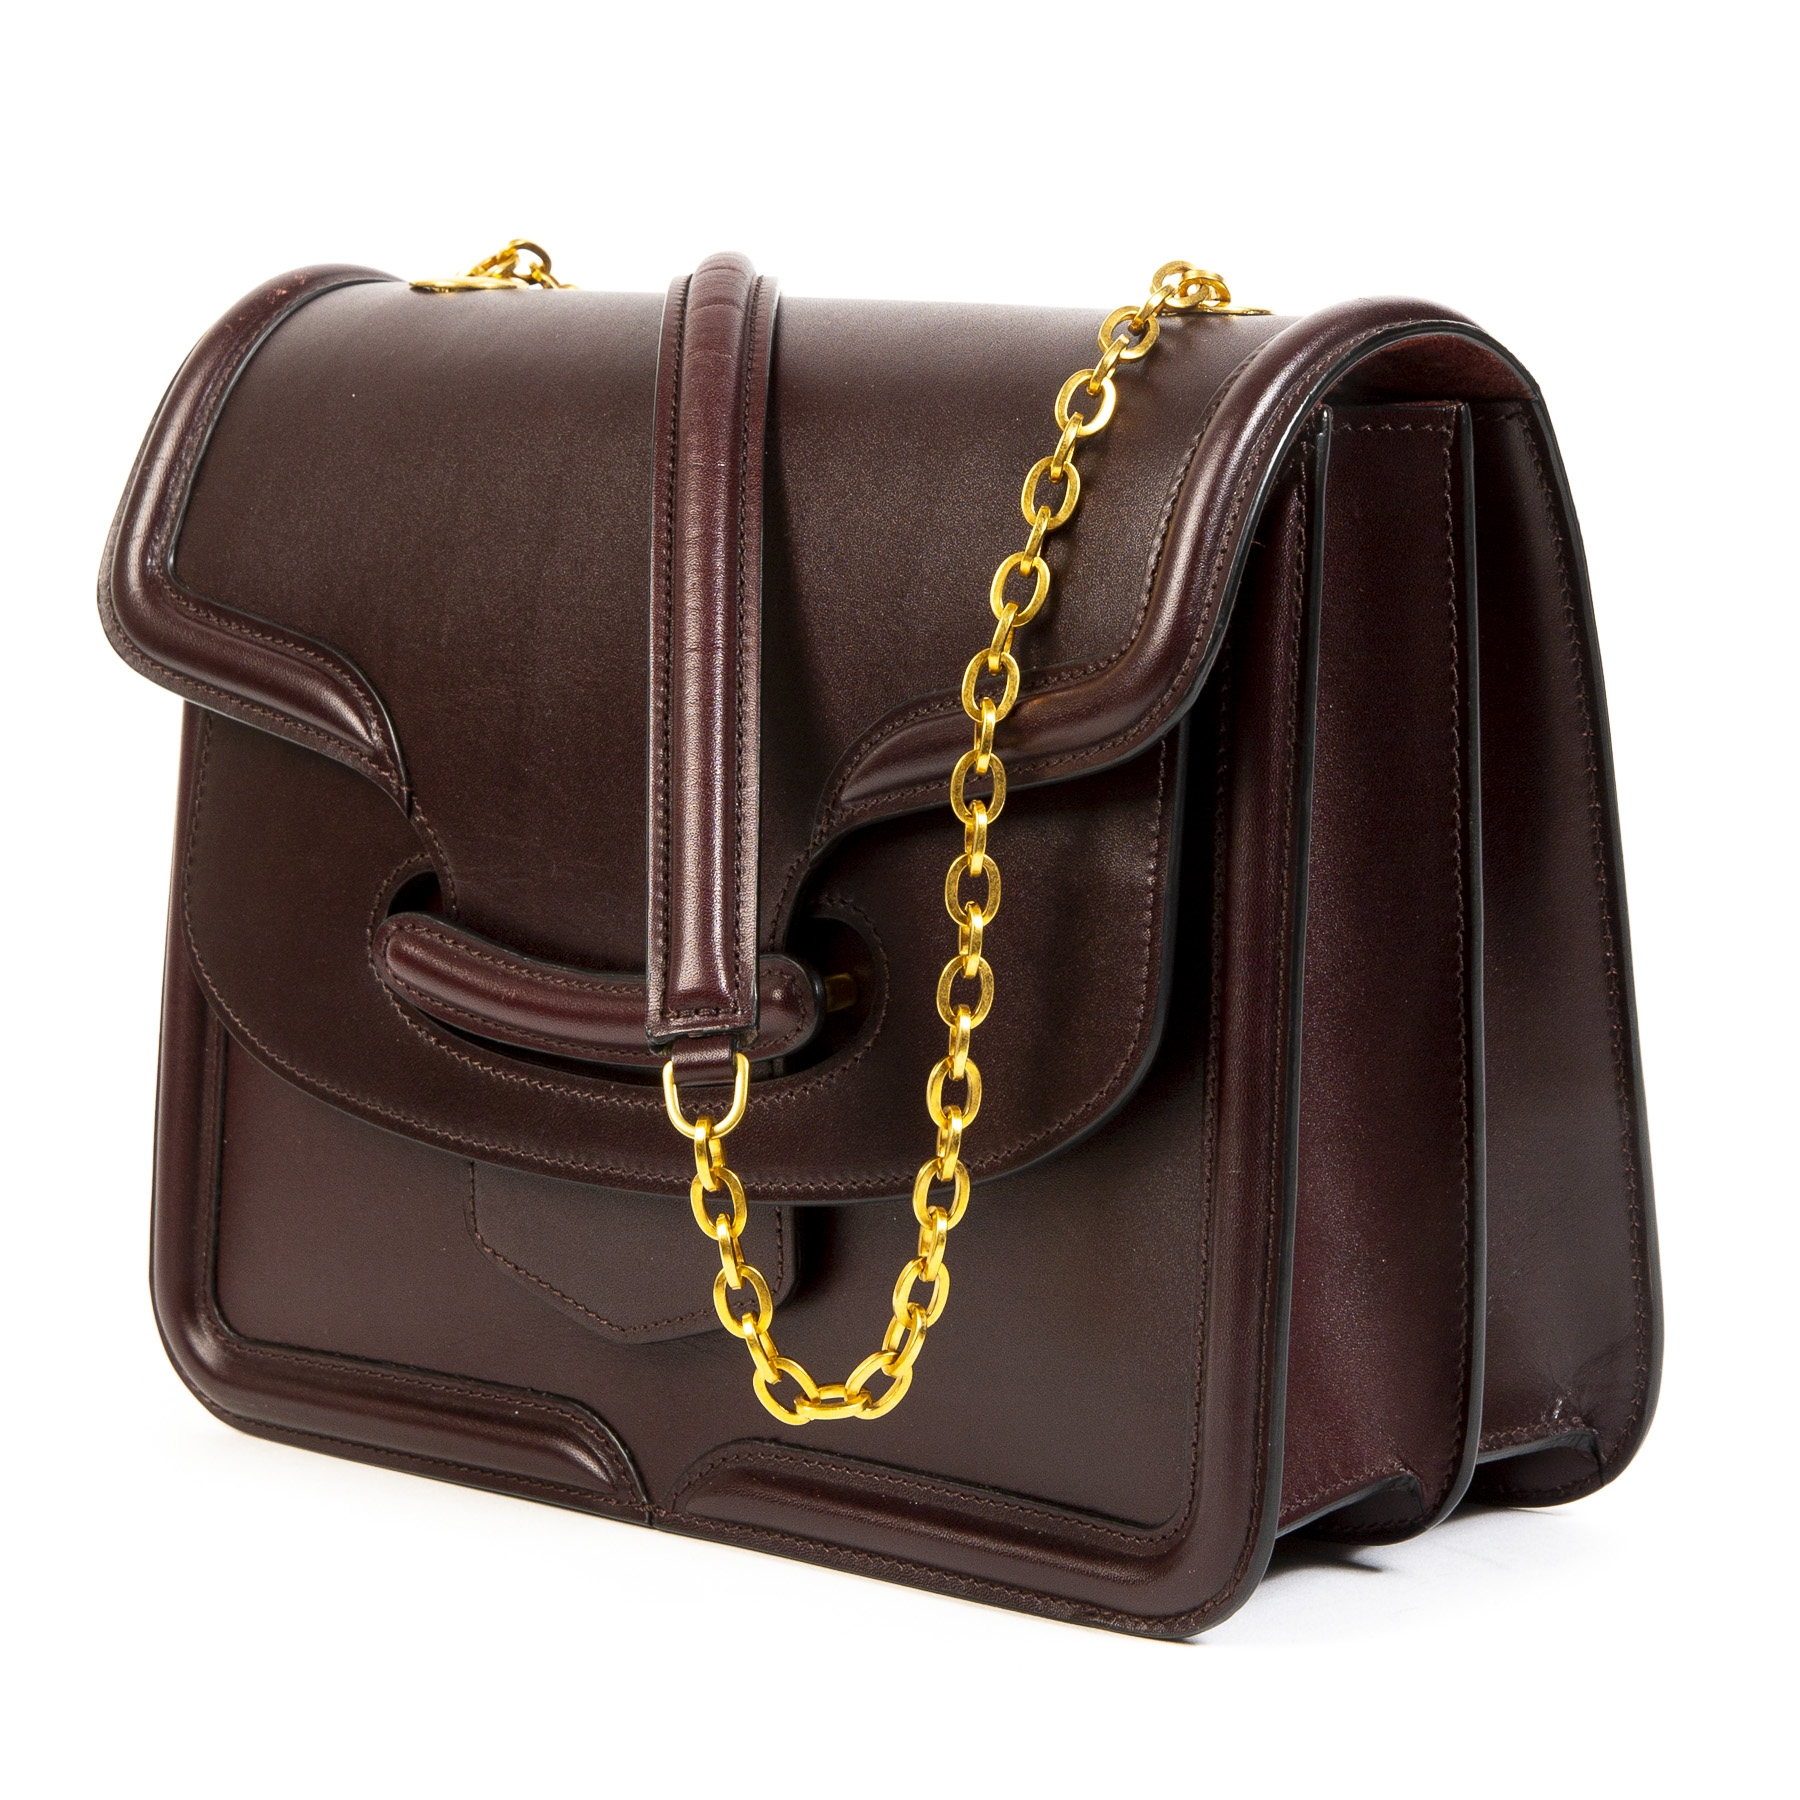 buy Alexander McQueen crossbody bag at labellov.com